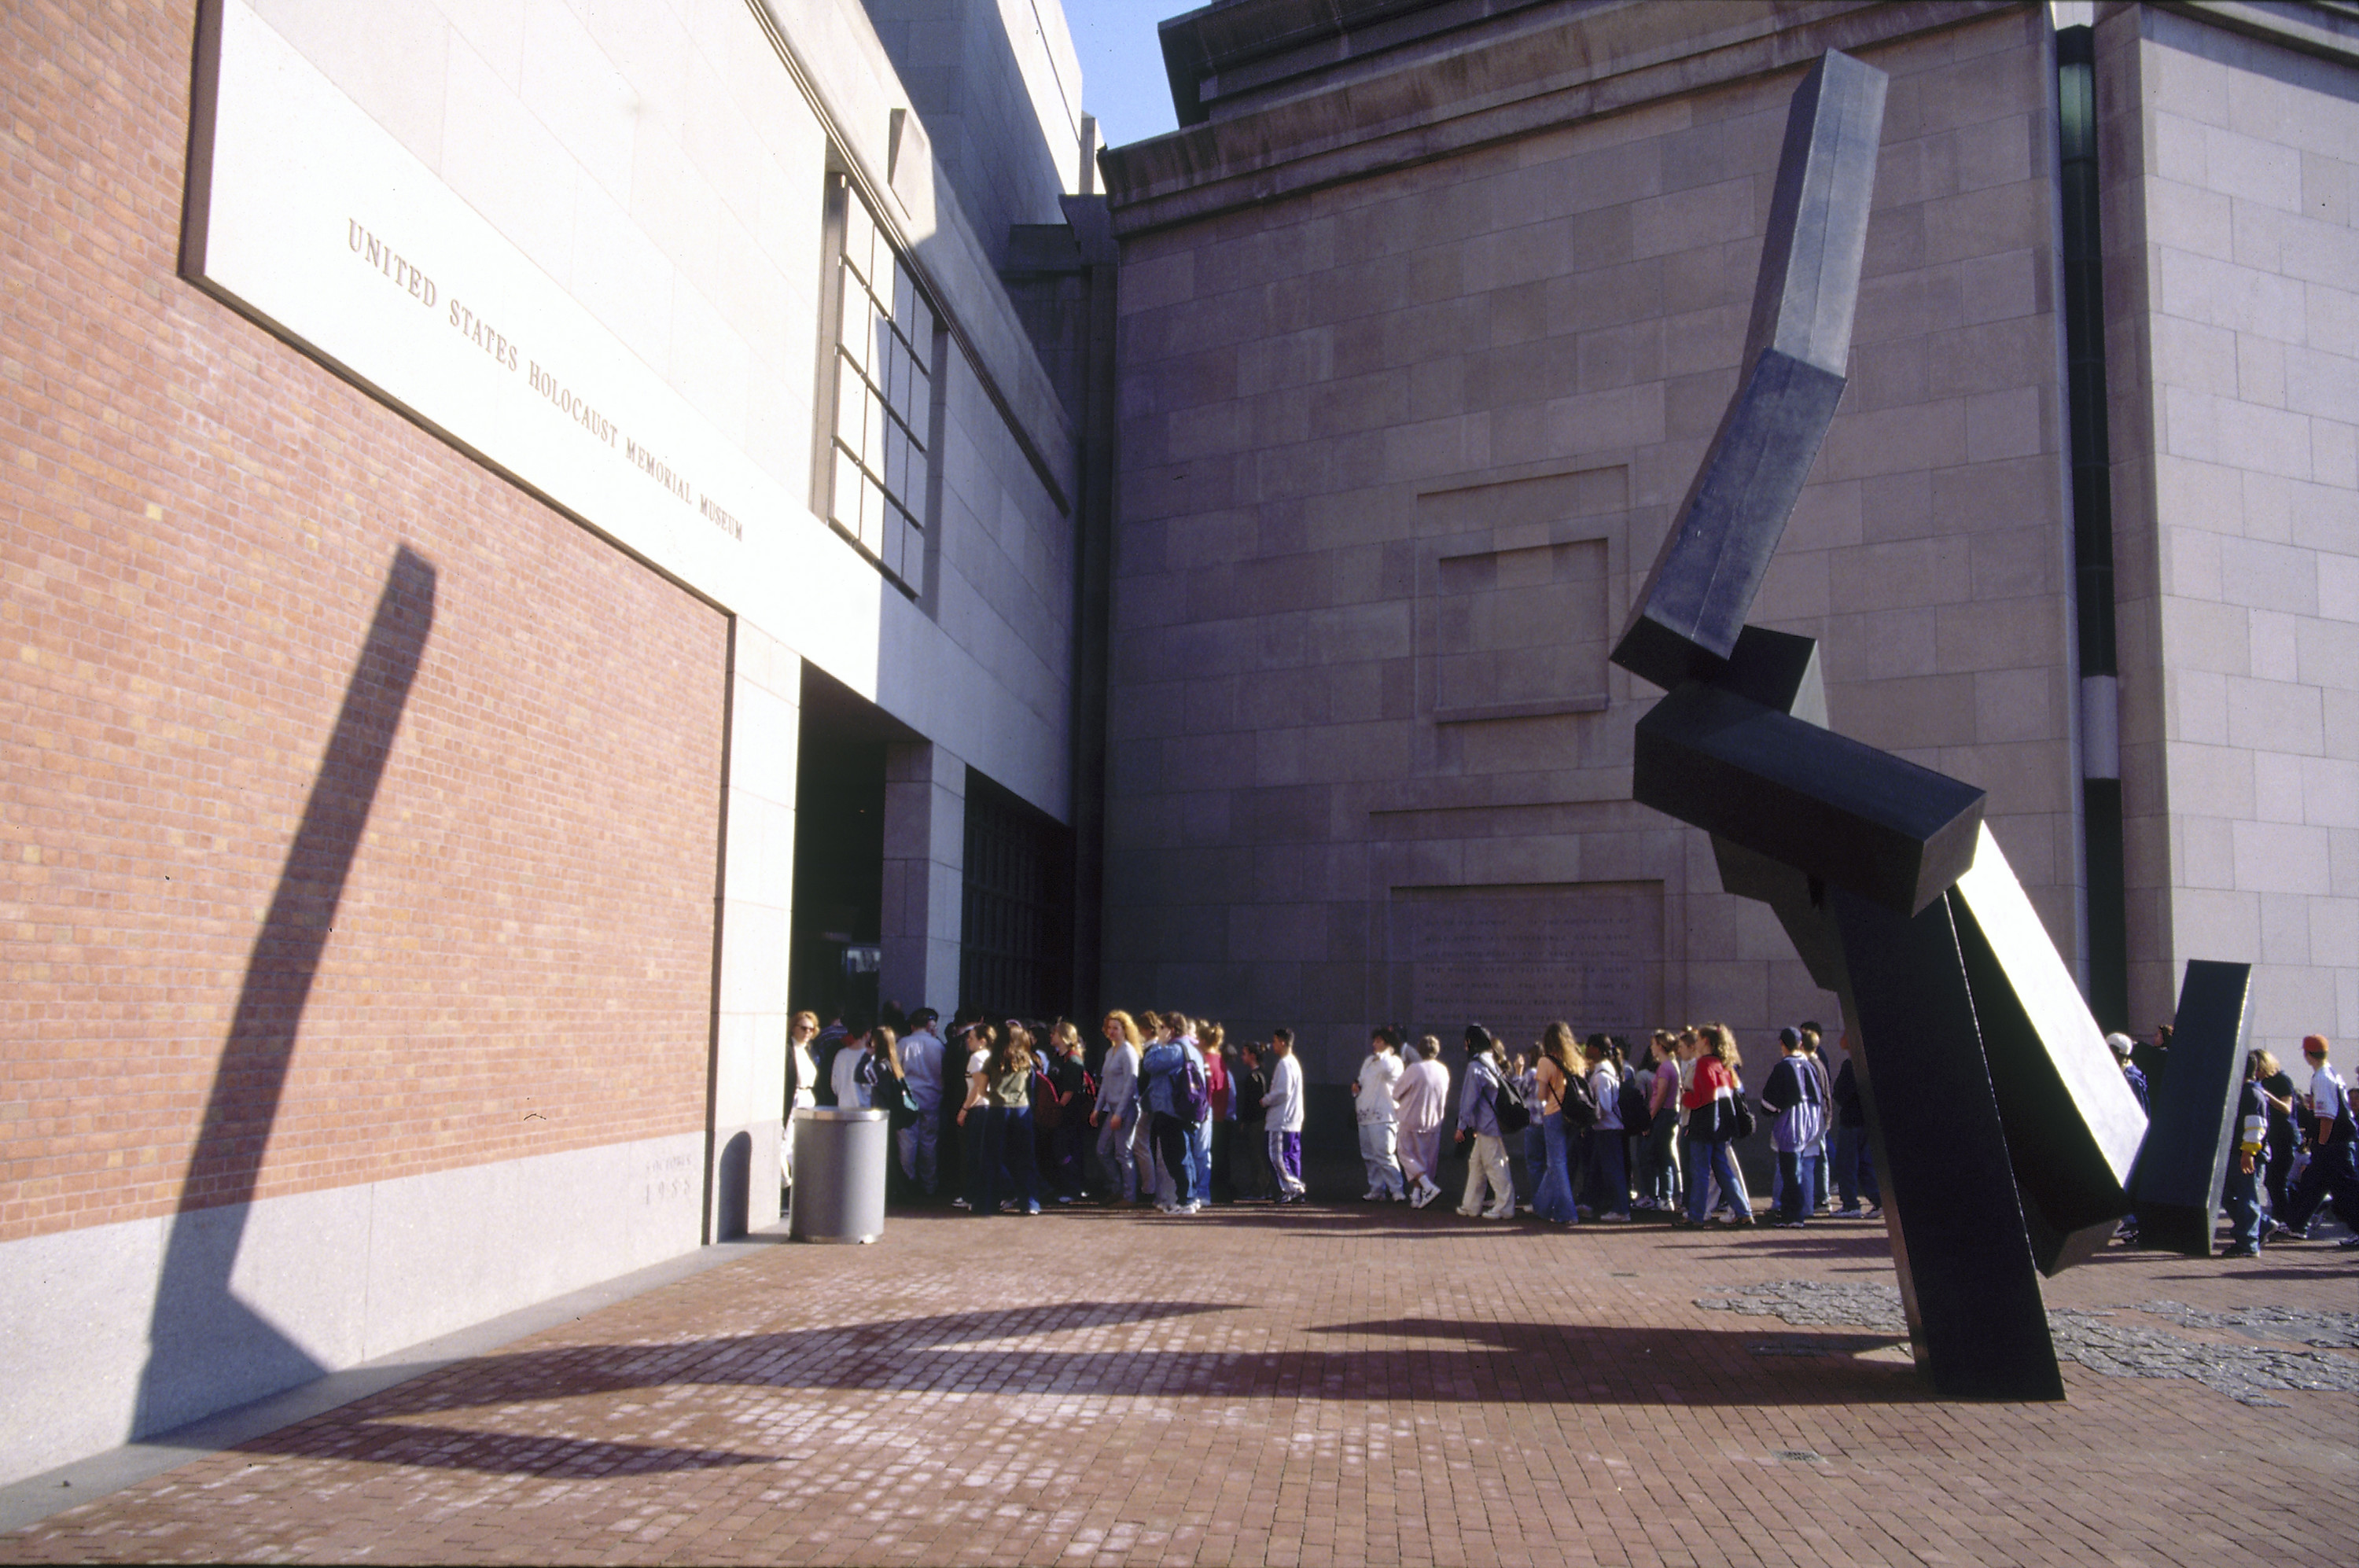 Visitors wait in line at the 15th Street entrance to the U.S. Holocaust Memorial Museum.